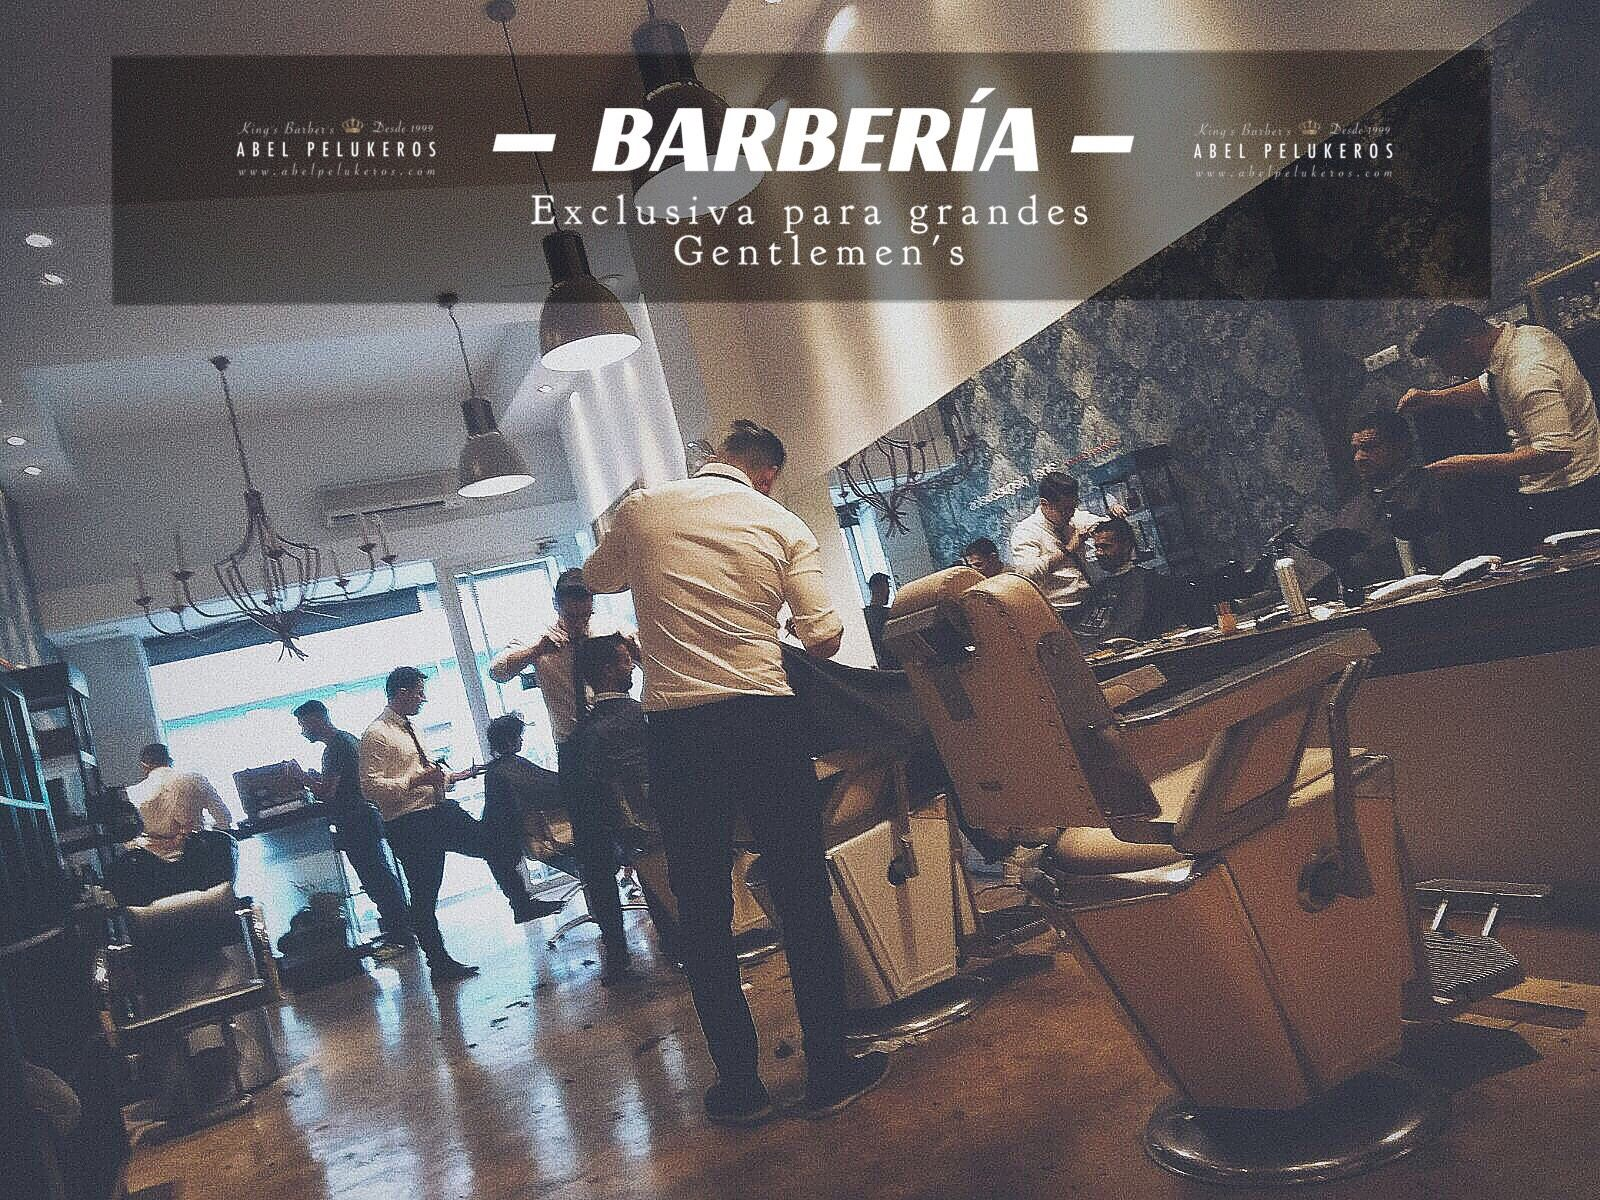 How Much Does A Barber Chair Cost Computer Recliner Barbería Barbershop World Pinterest